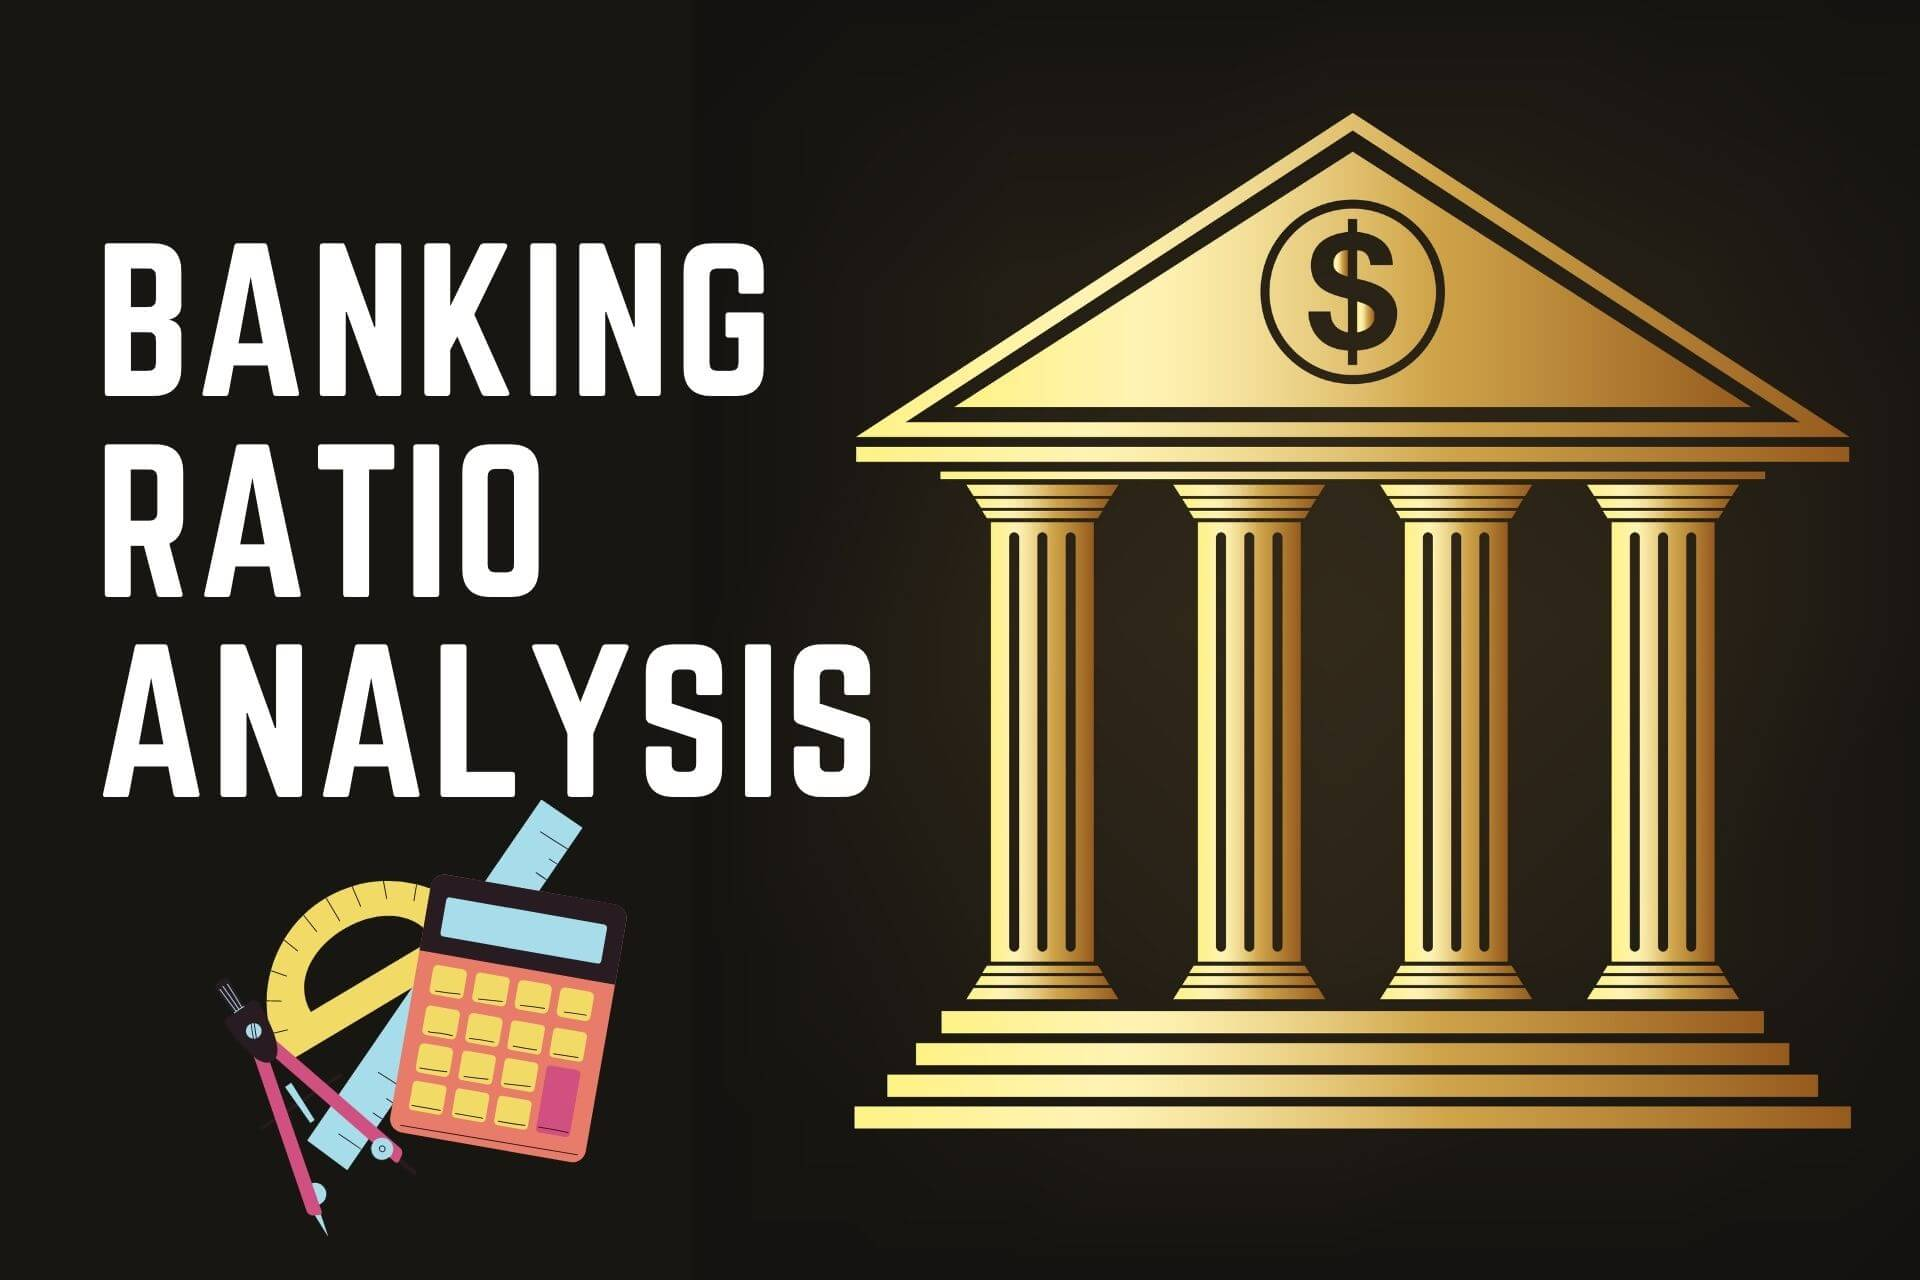 Banking Ratios – How to Assess the Financial Health of Banking Stocks?